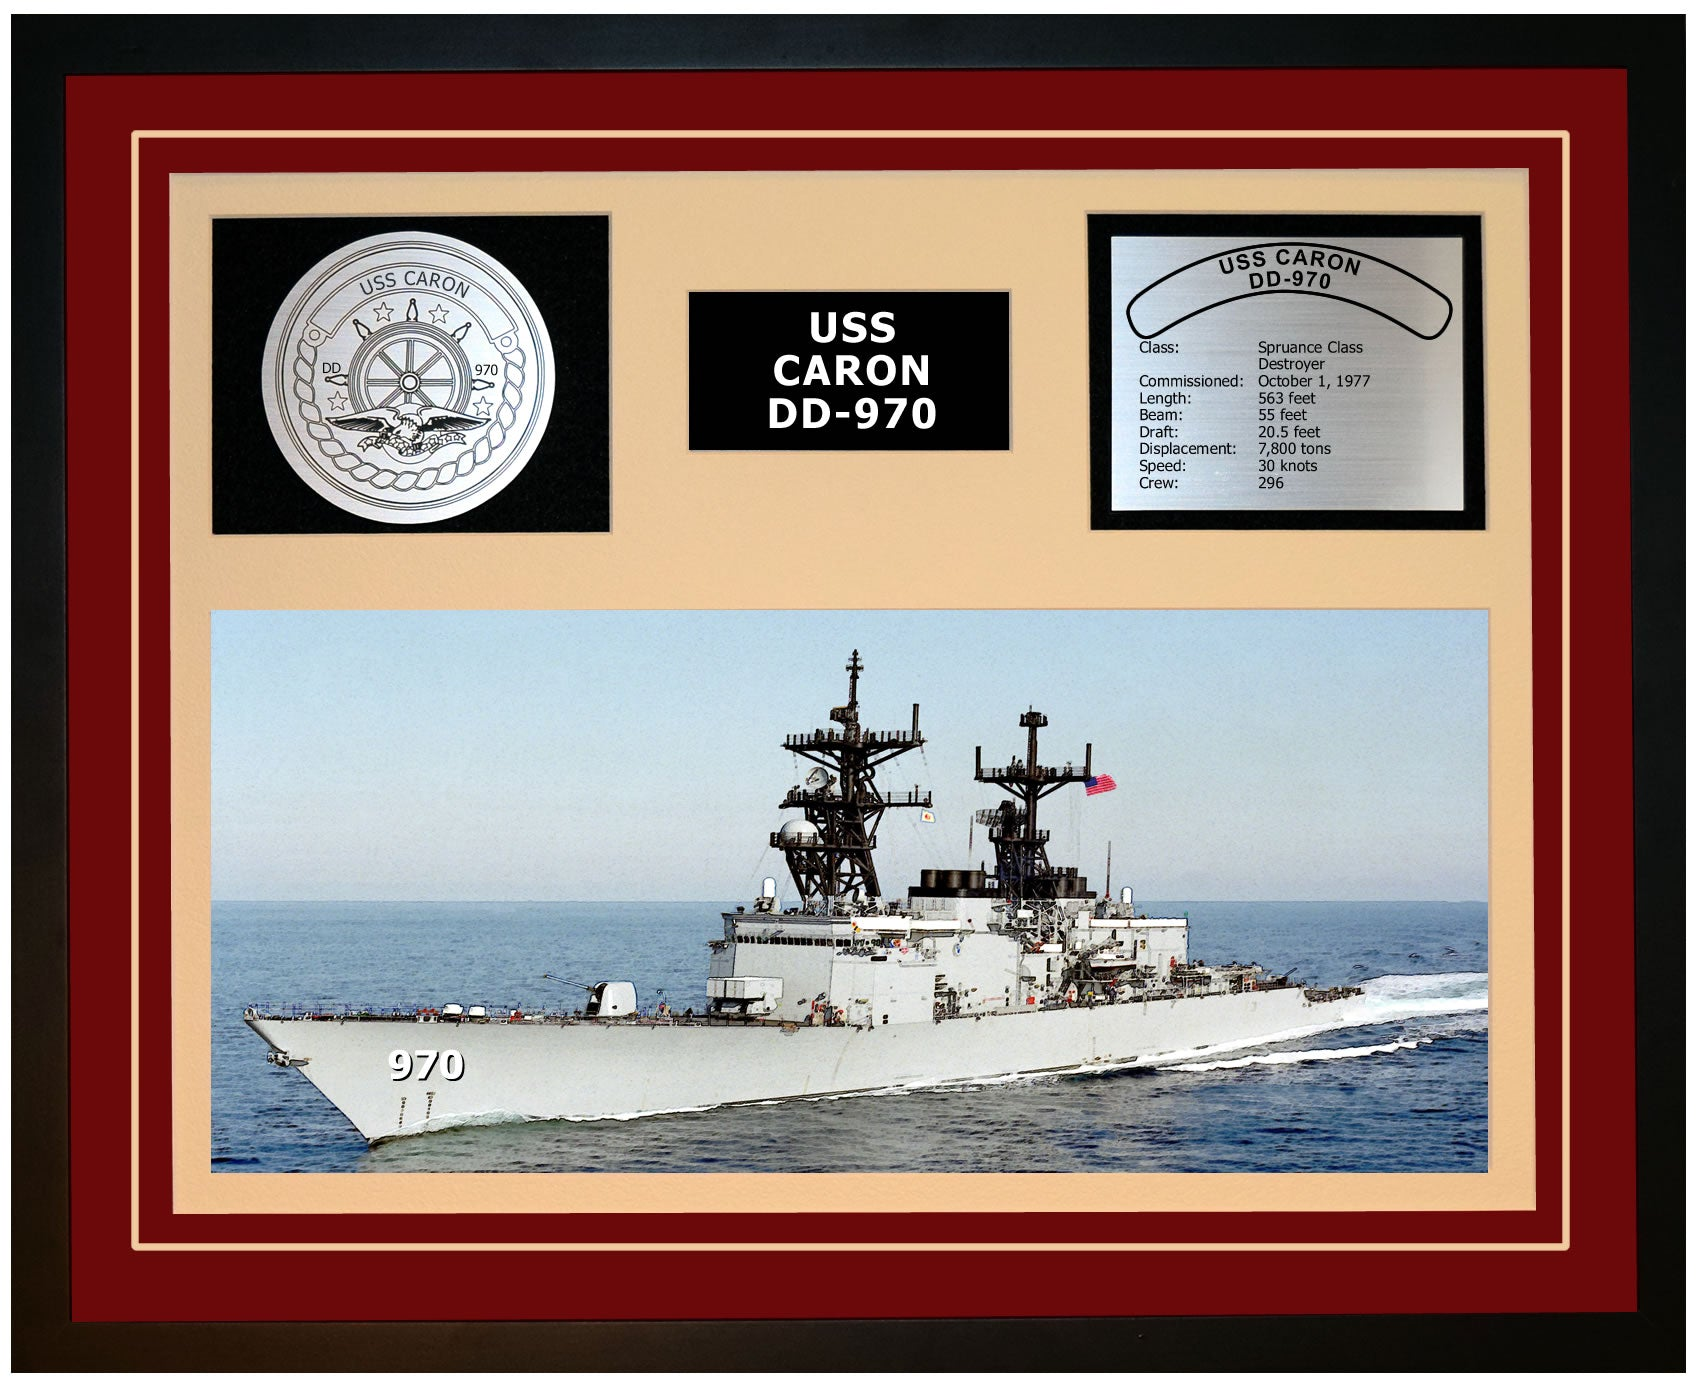 USS CARON DD-970 Framed Navy Ship Display Burgundy